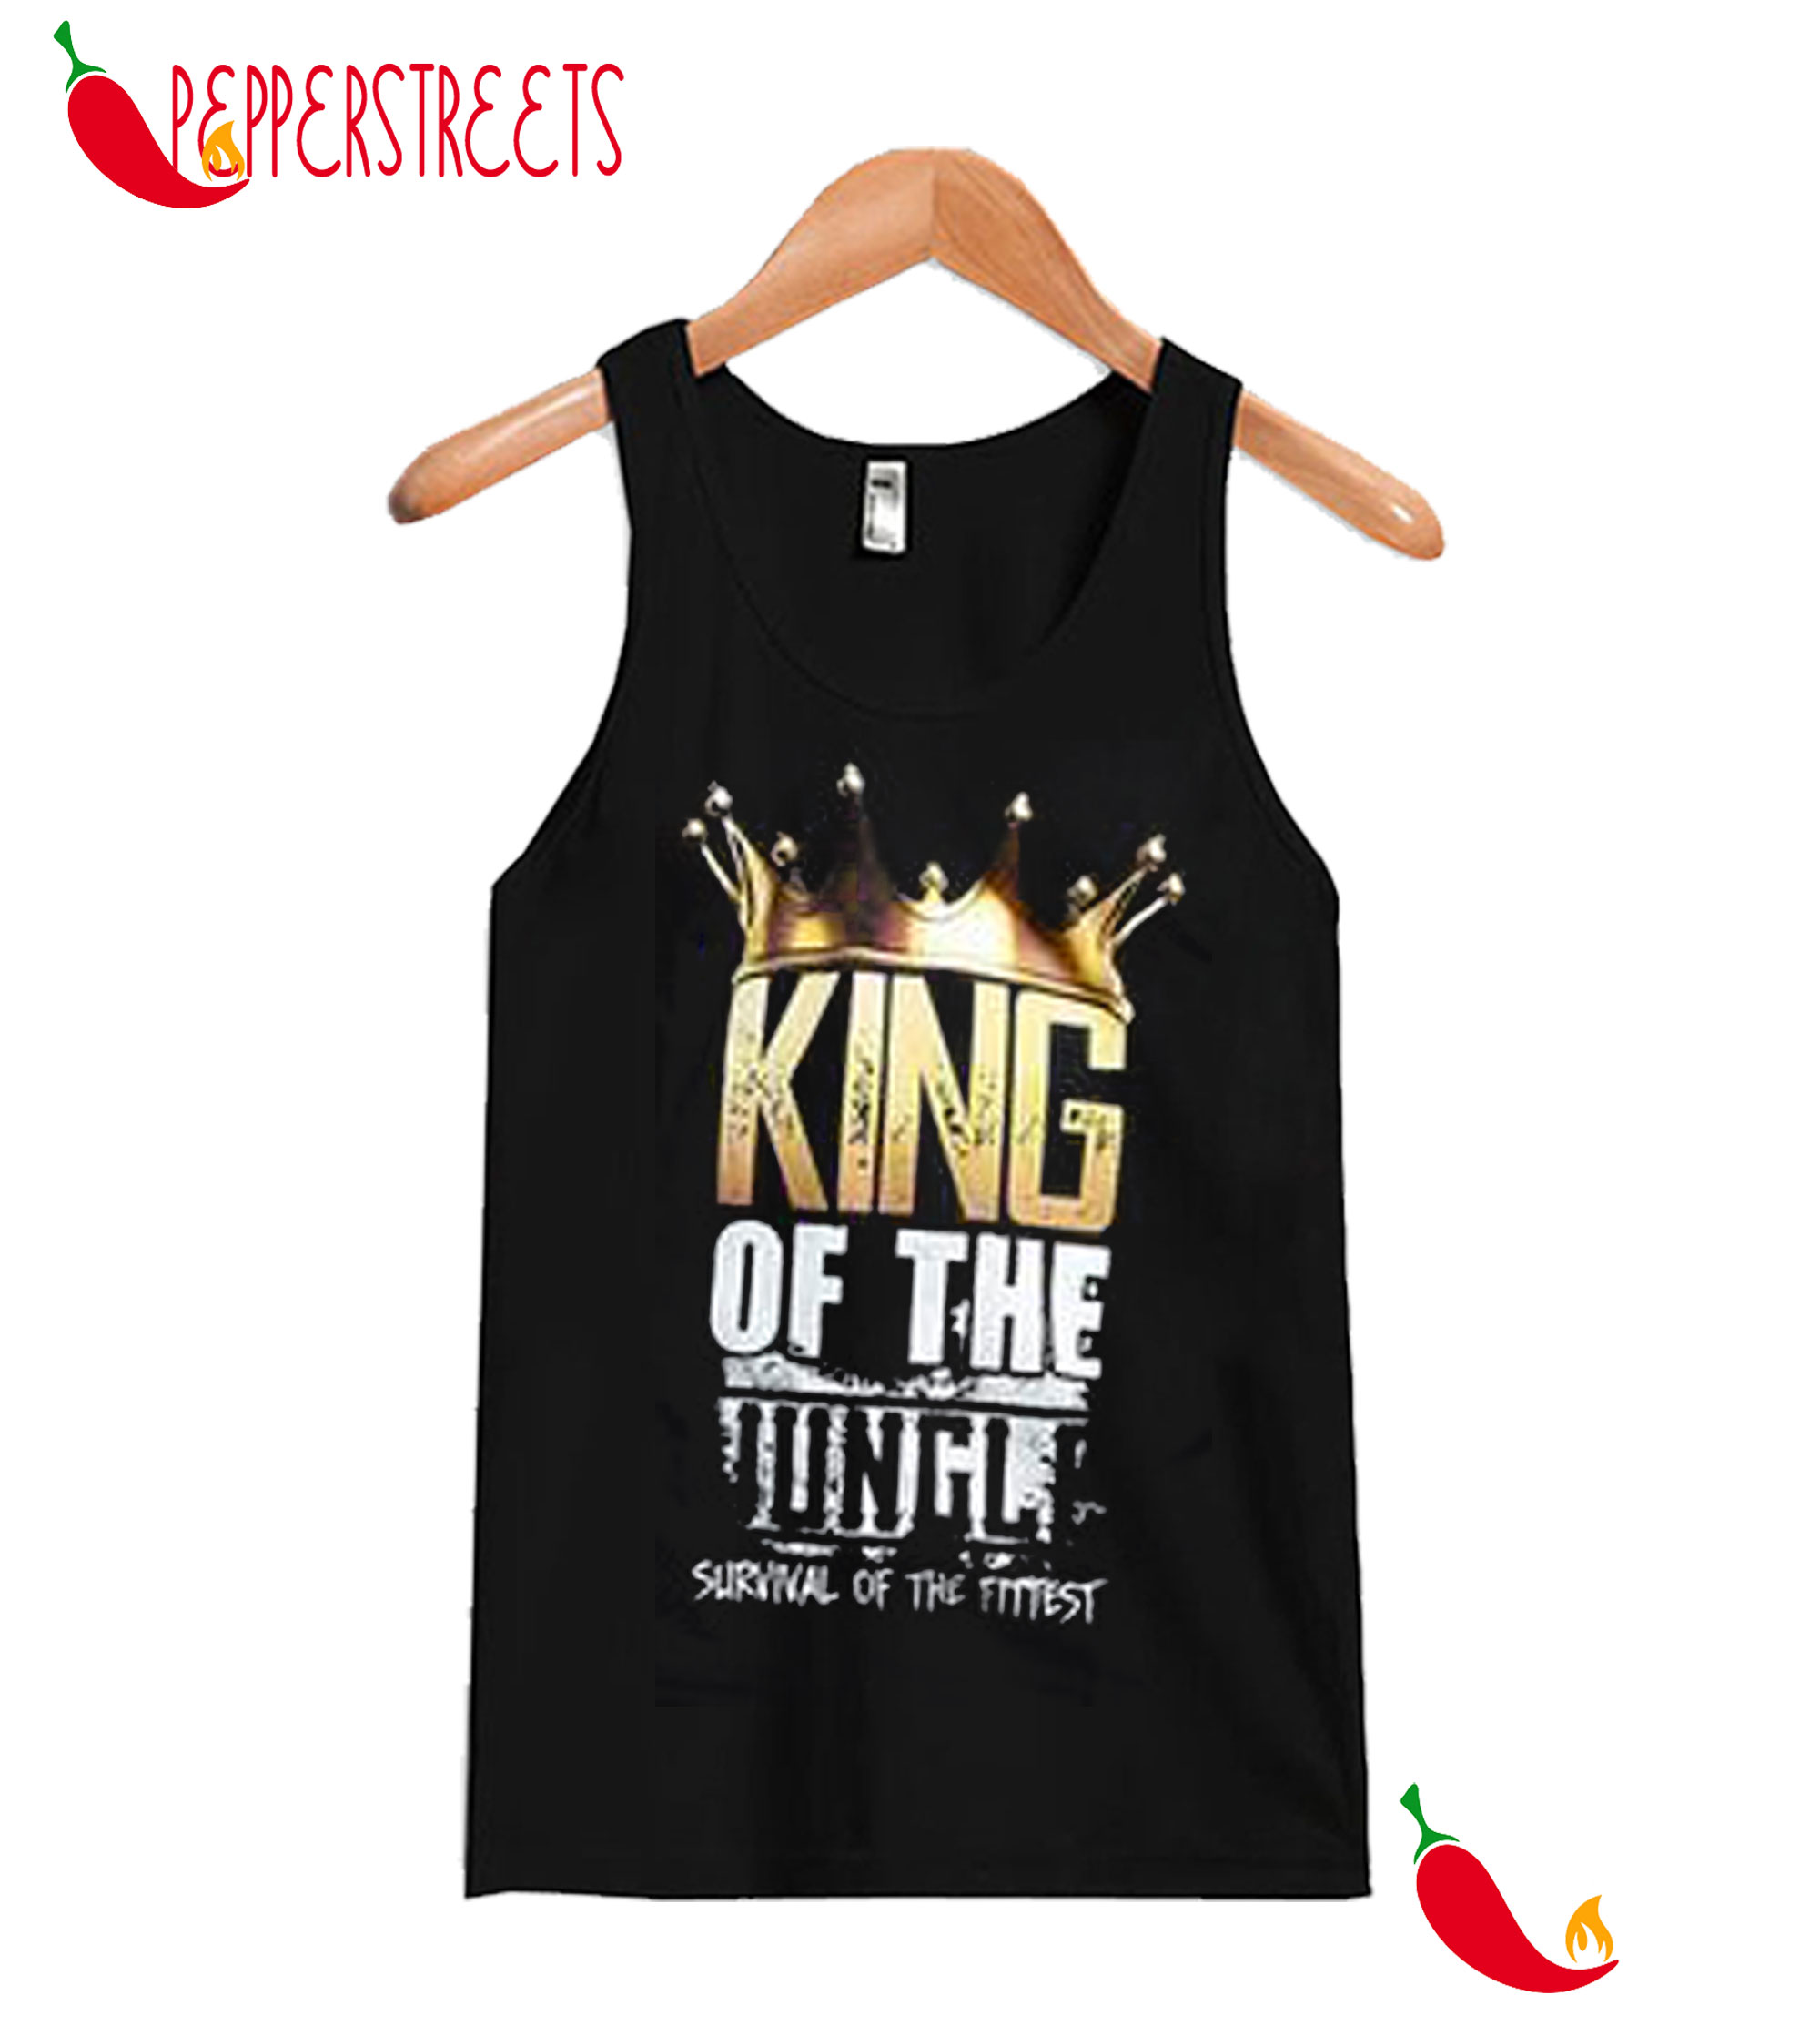 King Of The Jungle Survival Of The Titiest Tank Top